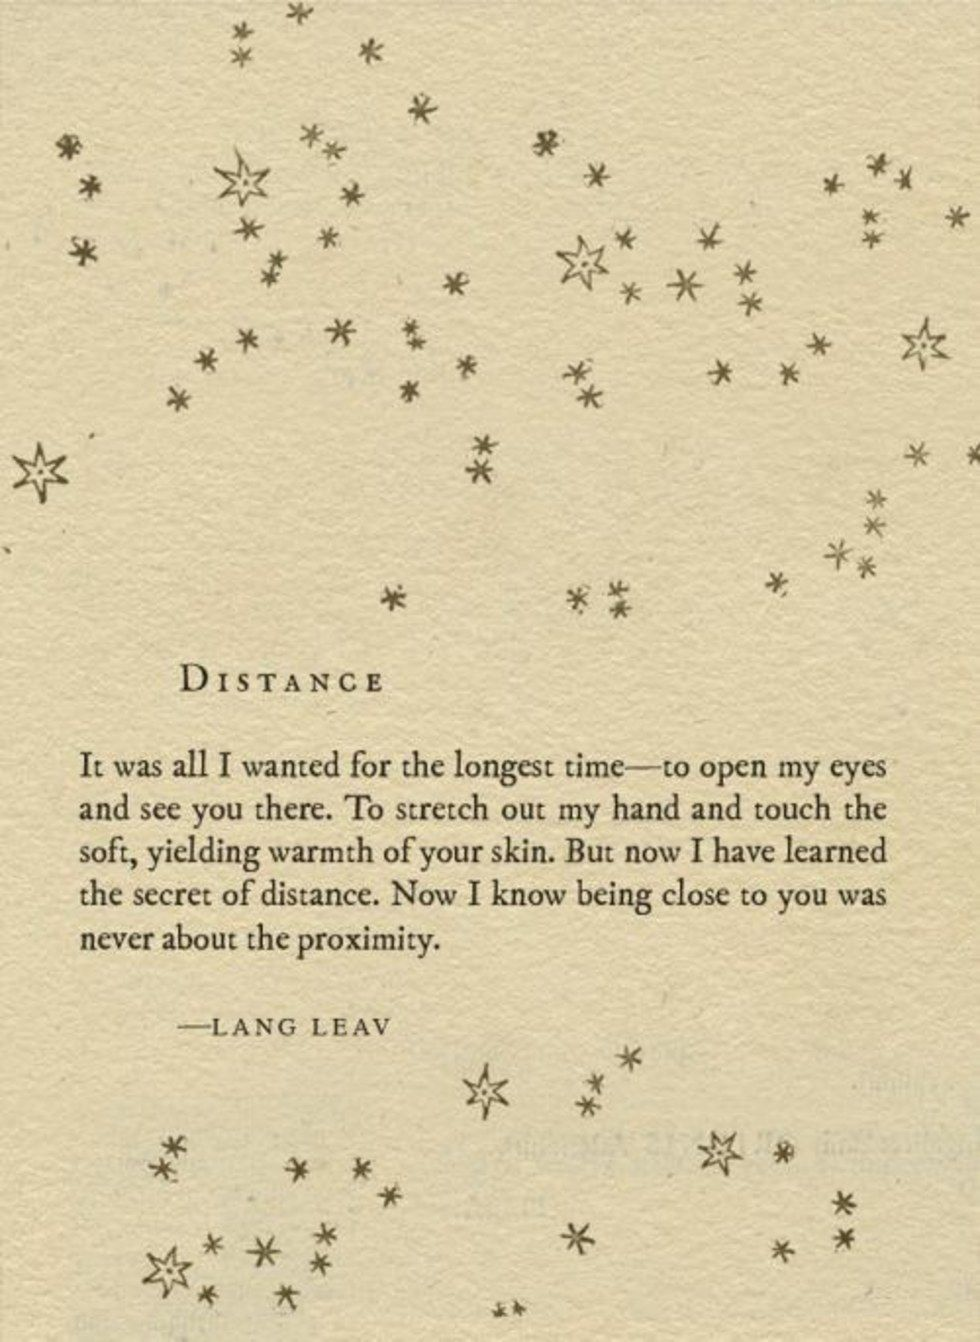 11 Poems By Lang Leav That Will Make You Want To Call Your Ex